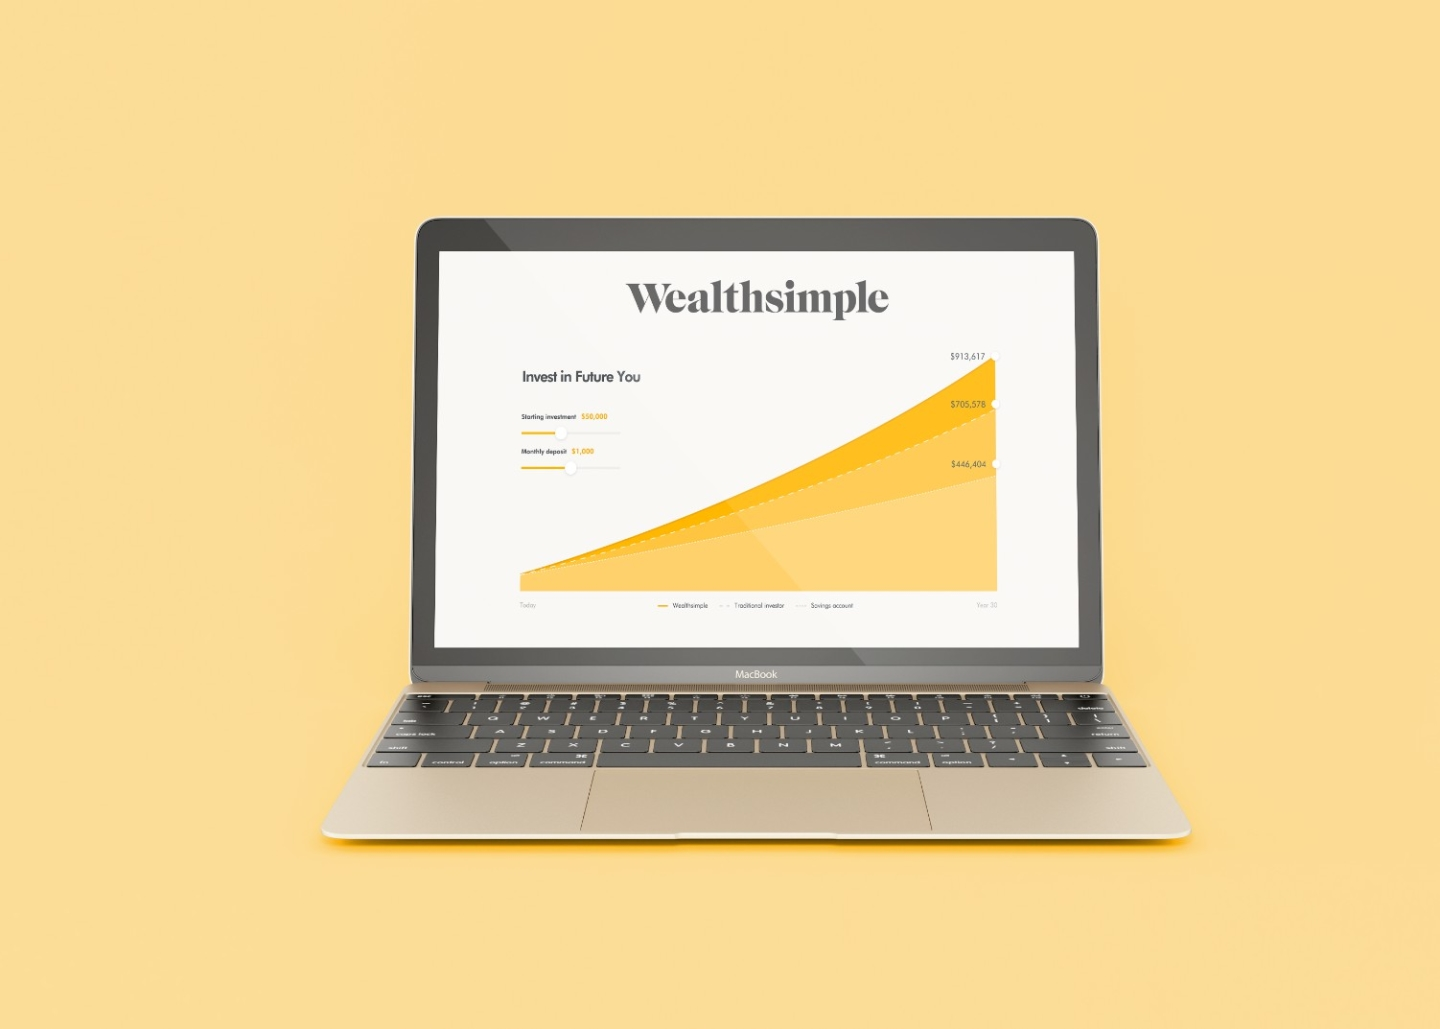 Wealthsimple Review: 3 Reasons Why You Should Start Investing Early in Life